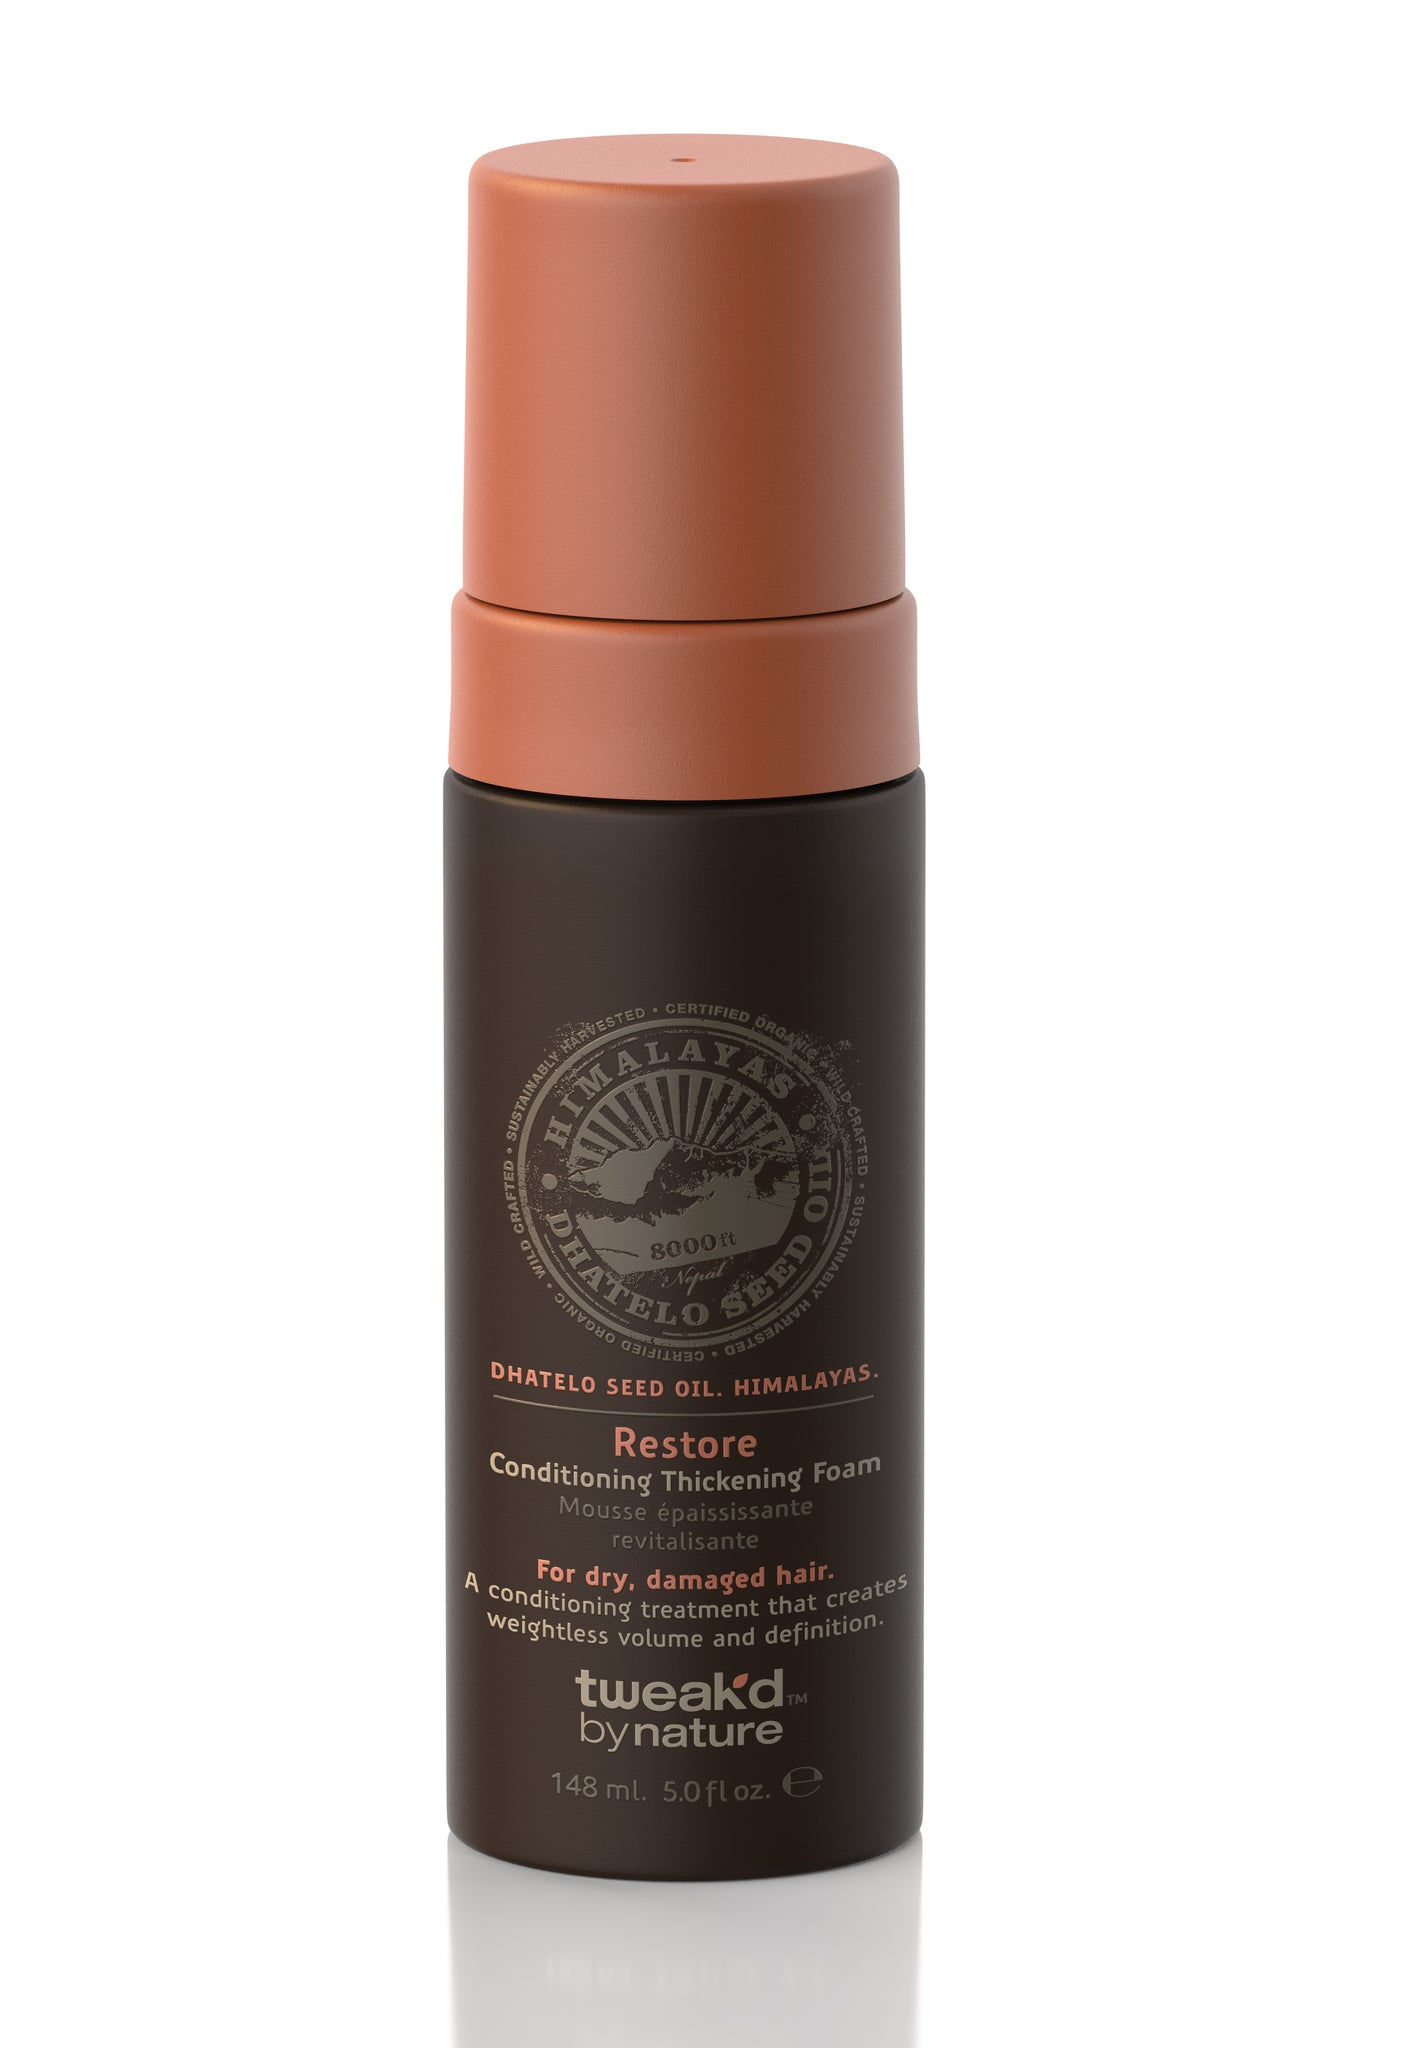 Tweak'd by Nature Restore Conditioning Thickening Foam